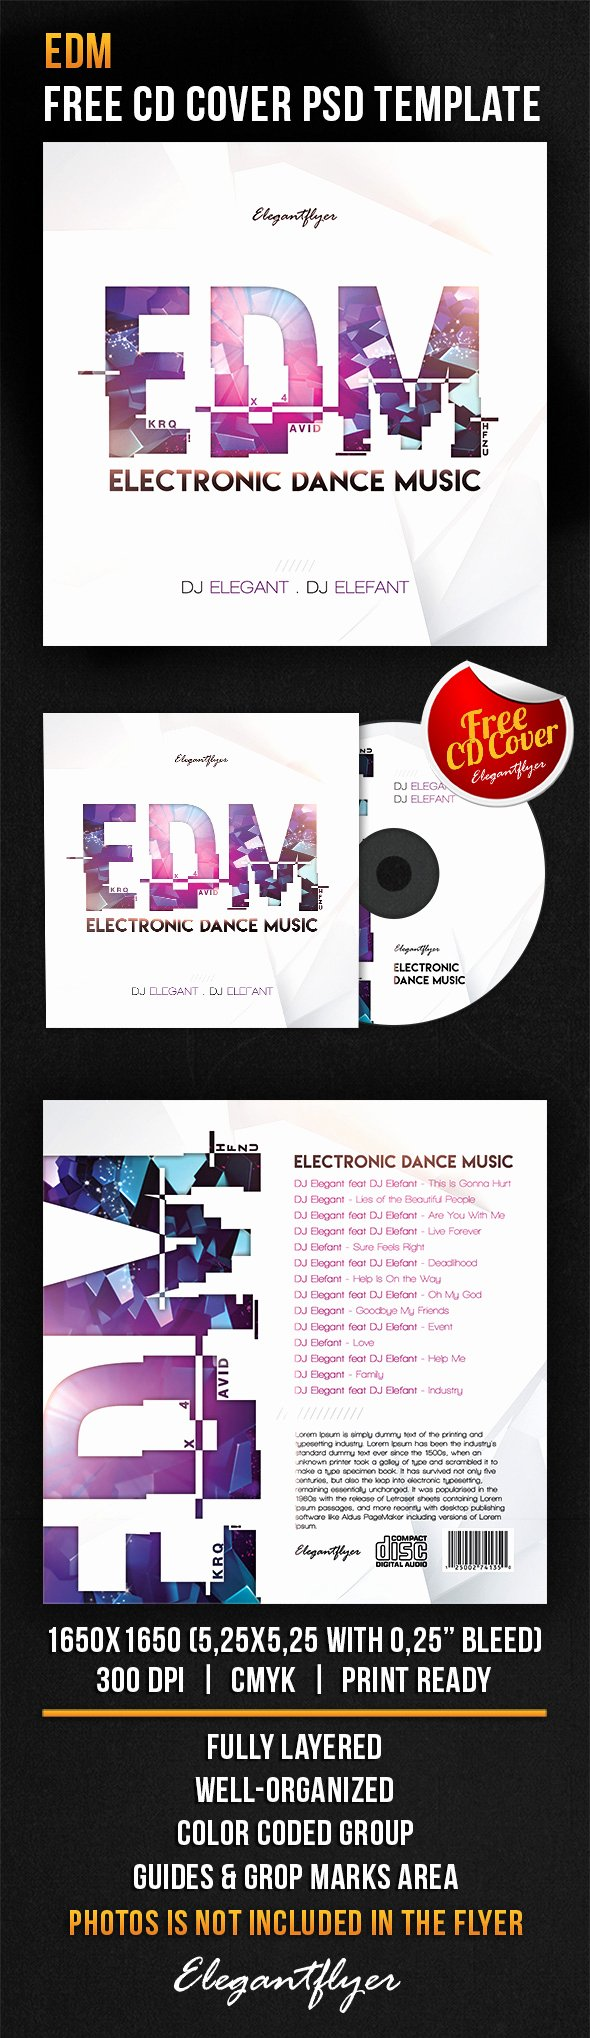 Edm – Free Cd Cover Psd Template – by Elegantflyer